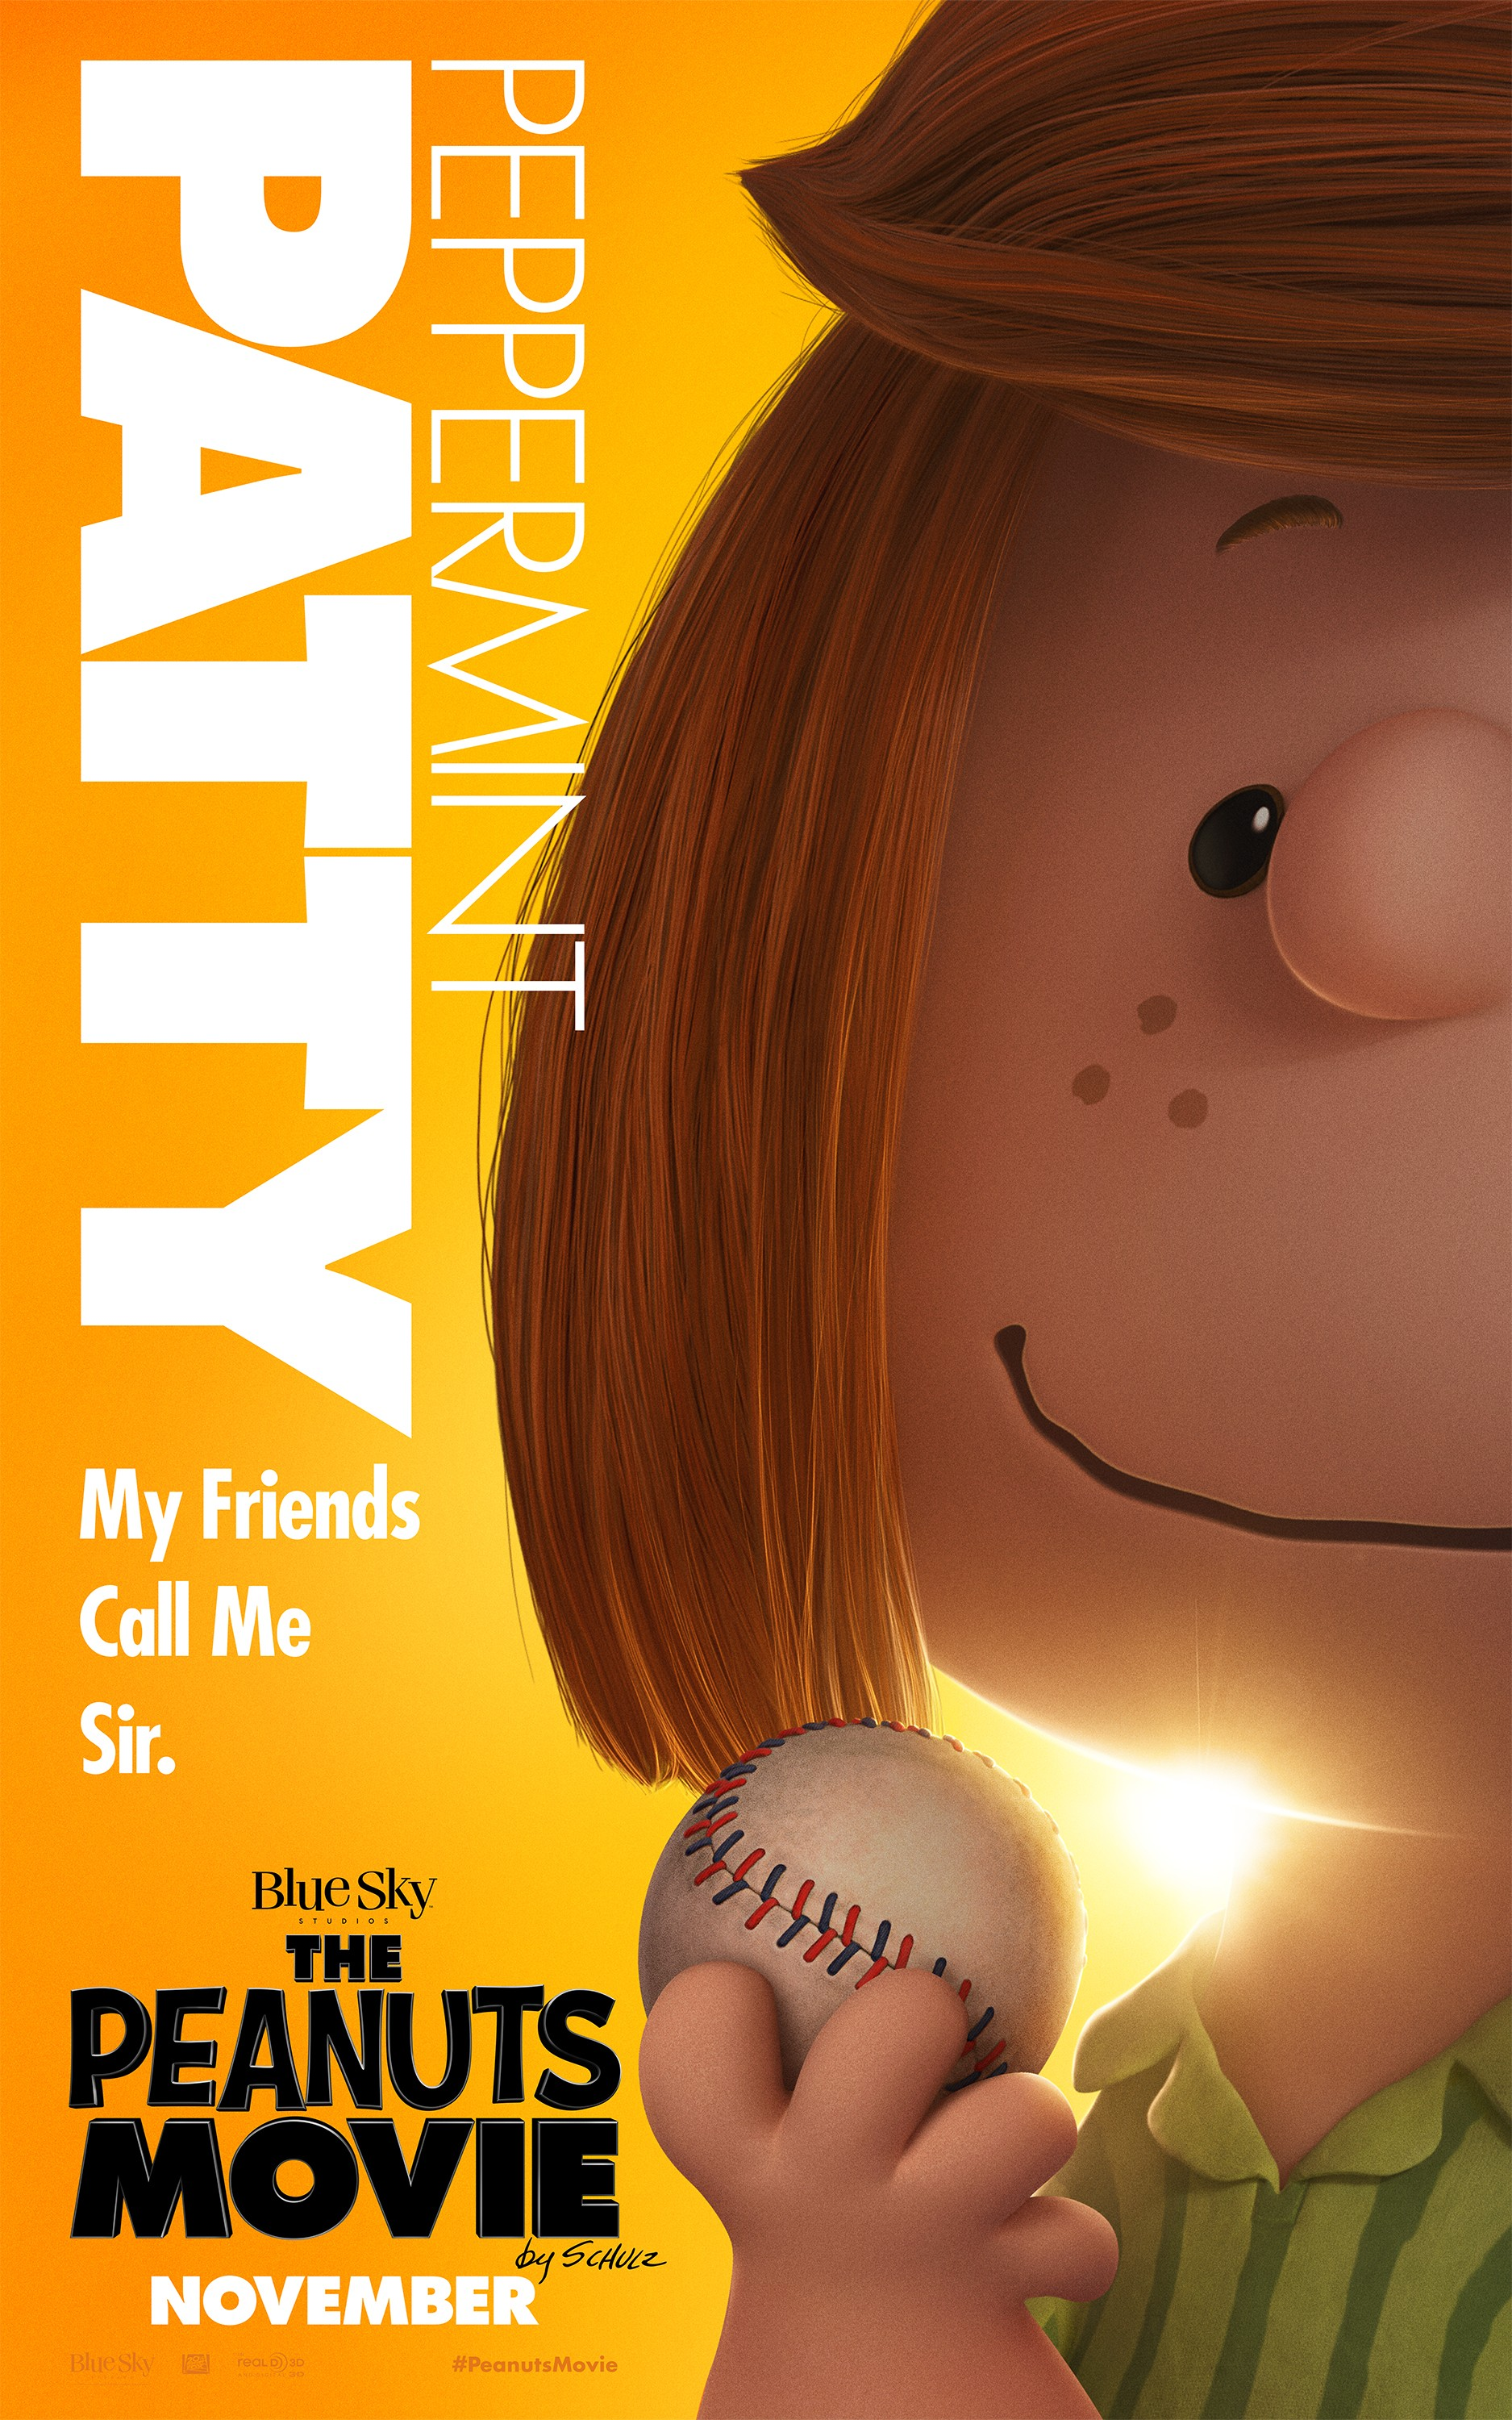 Peanuts-Official-Poster-22Abril2015-02